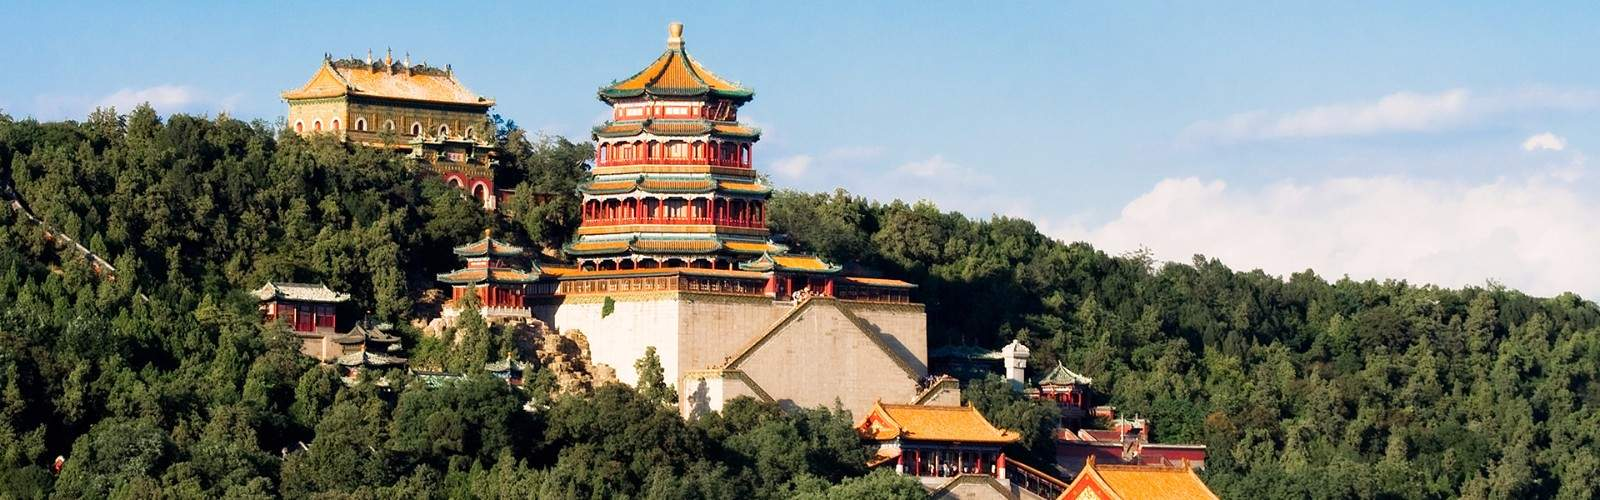 Beijing 3n Short Stay Tour | Wendy Wu Tours